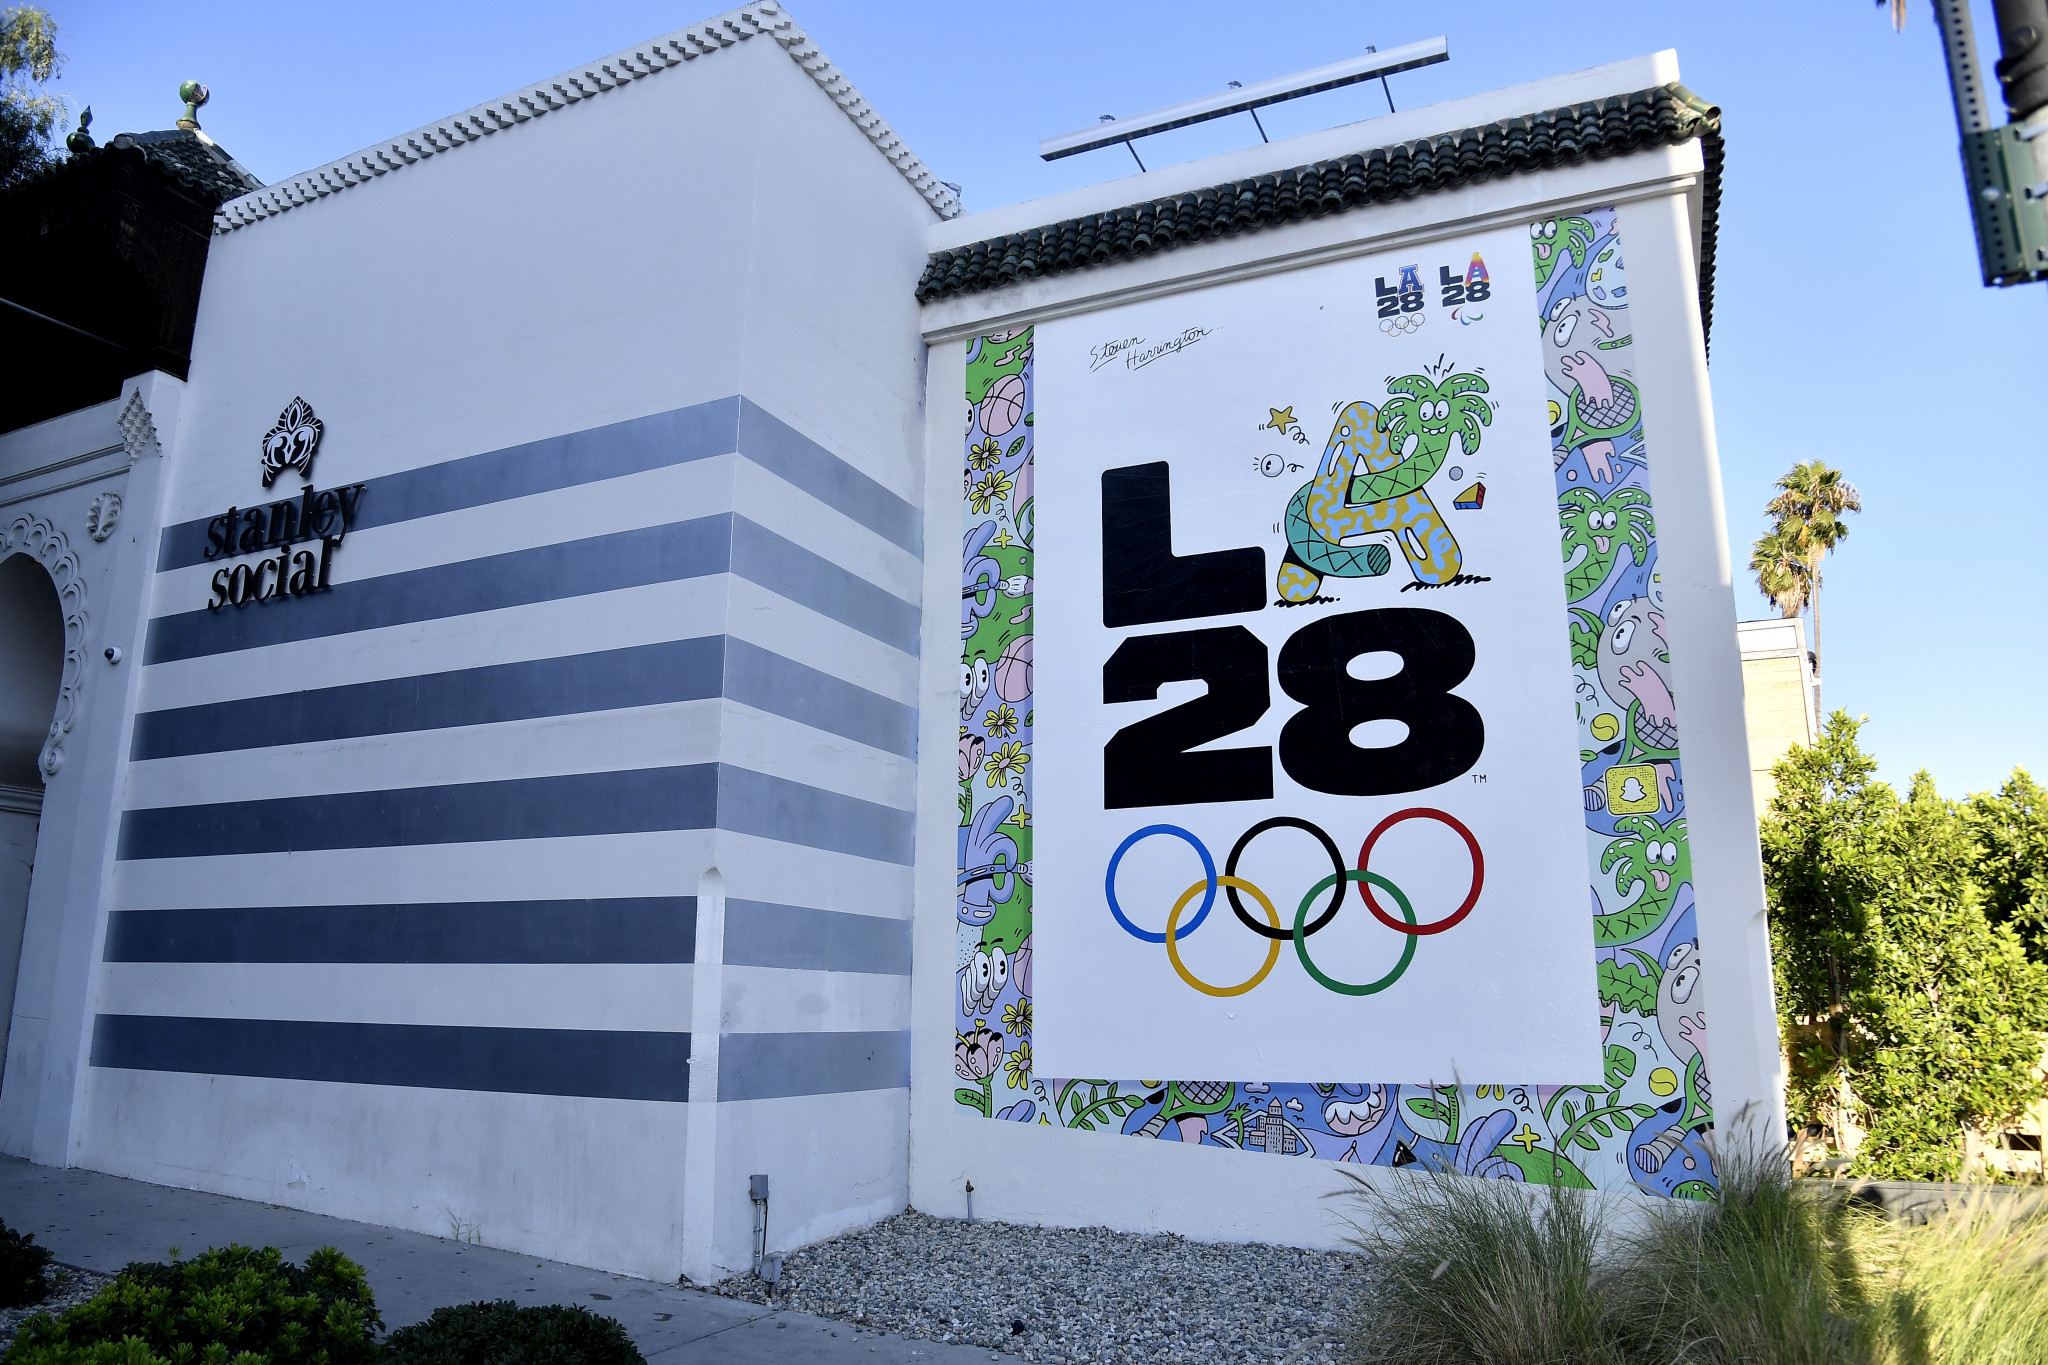 Los Angeles previously hosted the Olympics in 1984 and 1932, but never before the Paralympics ©Getty Images